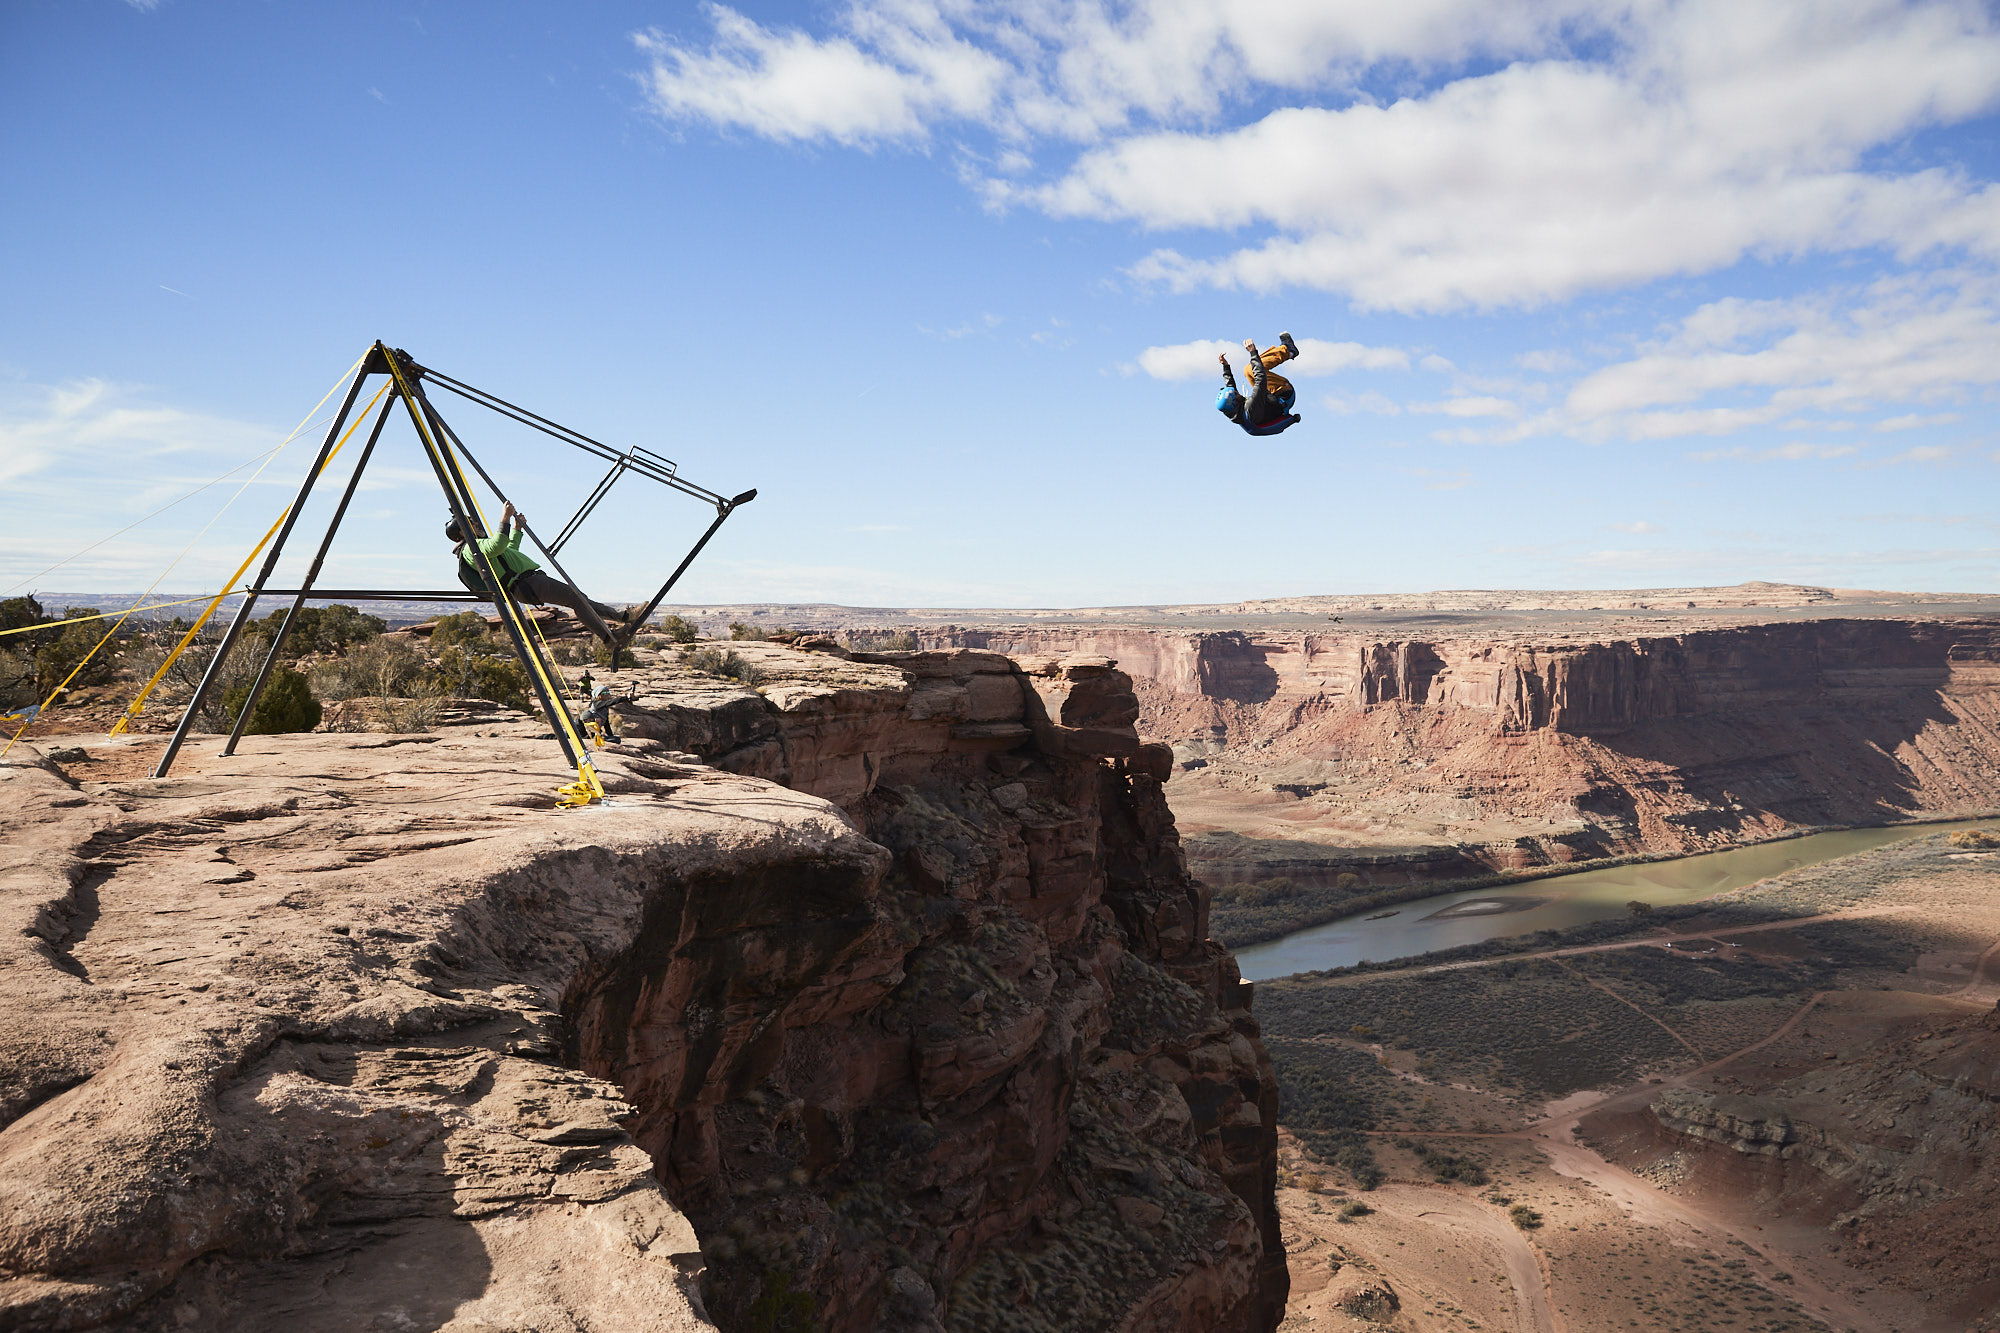 Russian Swing BASE jump in Moab, UT